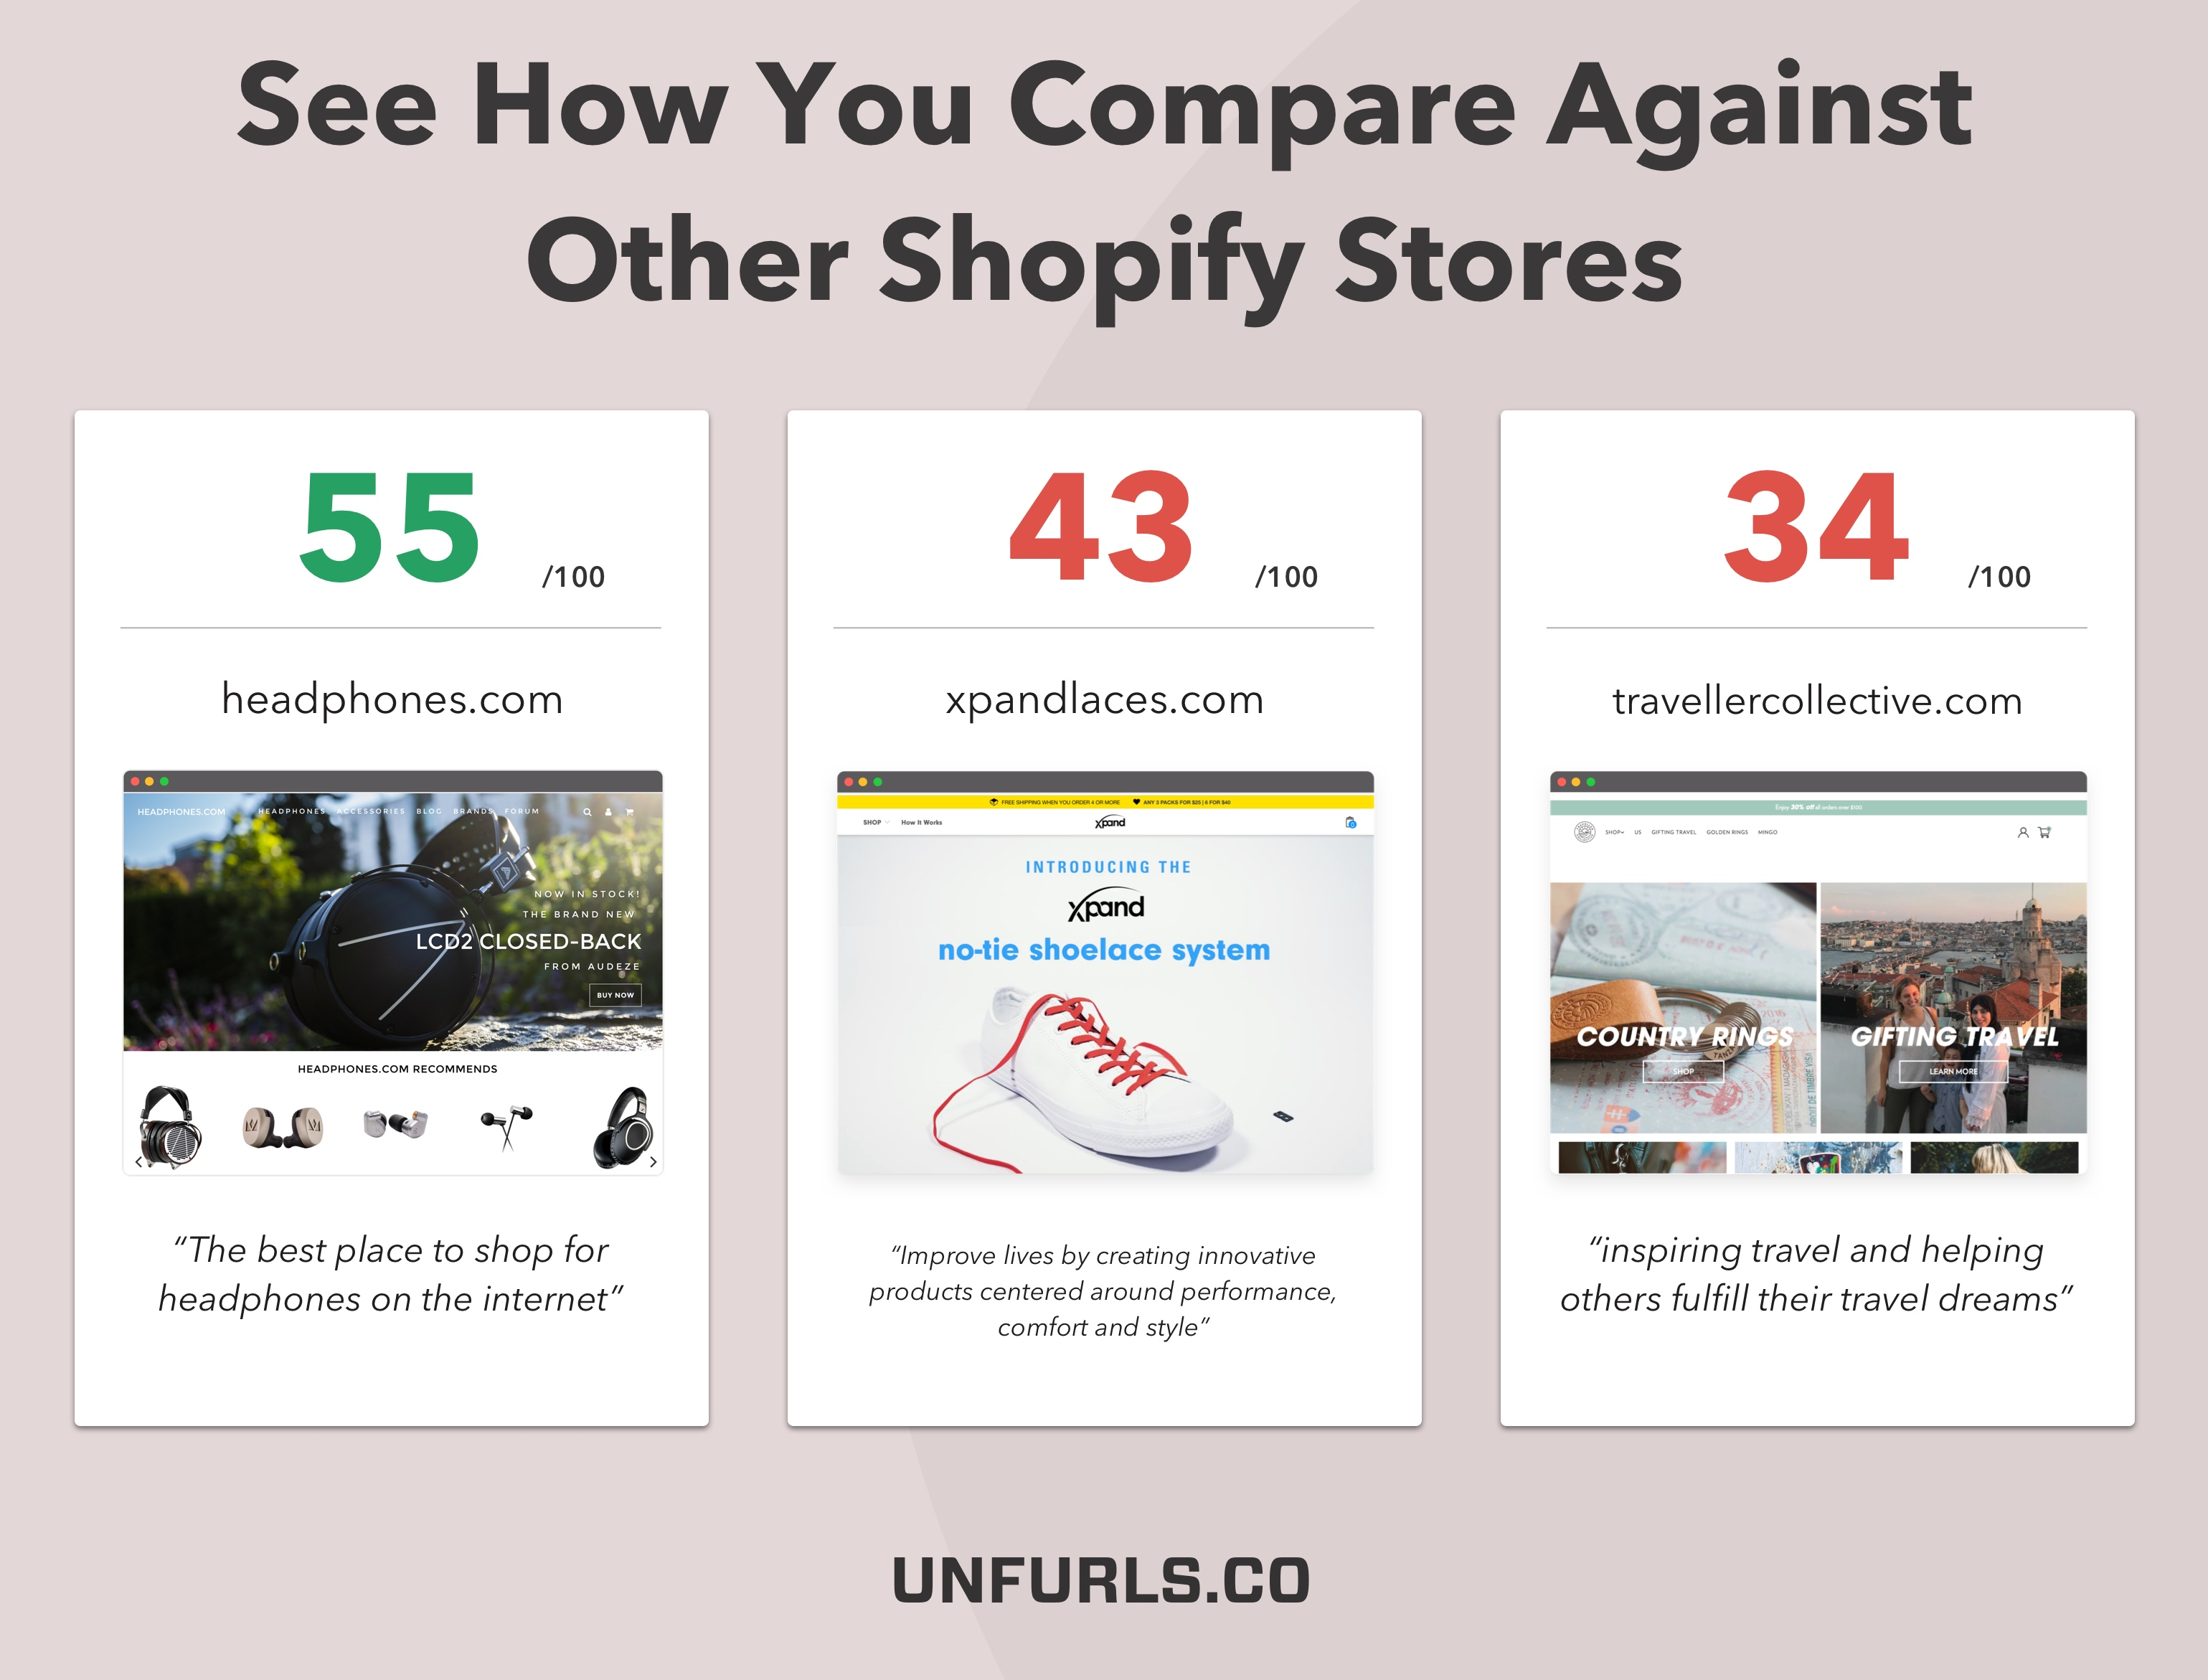 see how you compare against other shopify stores